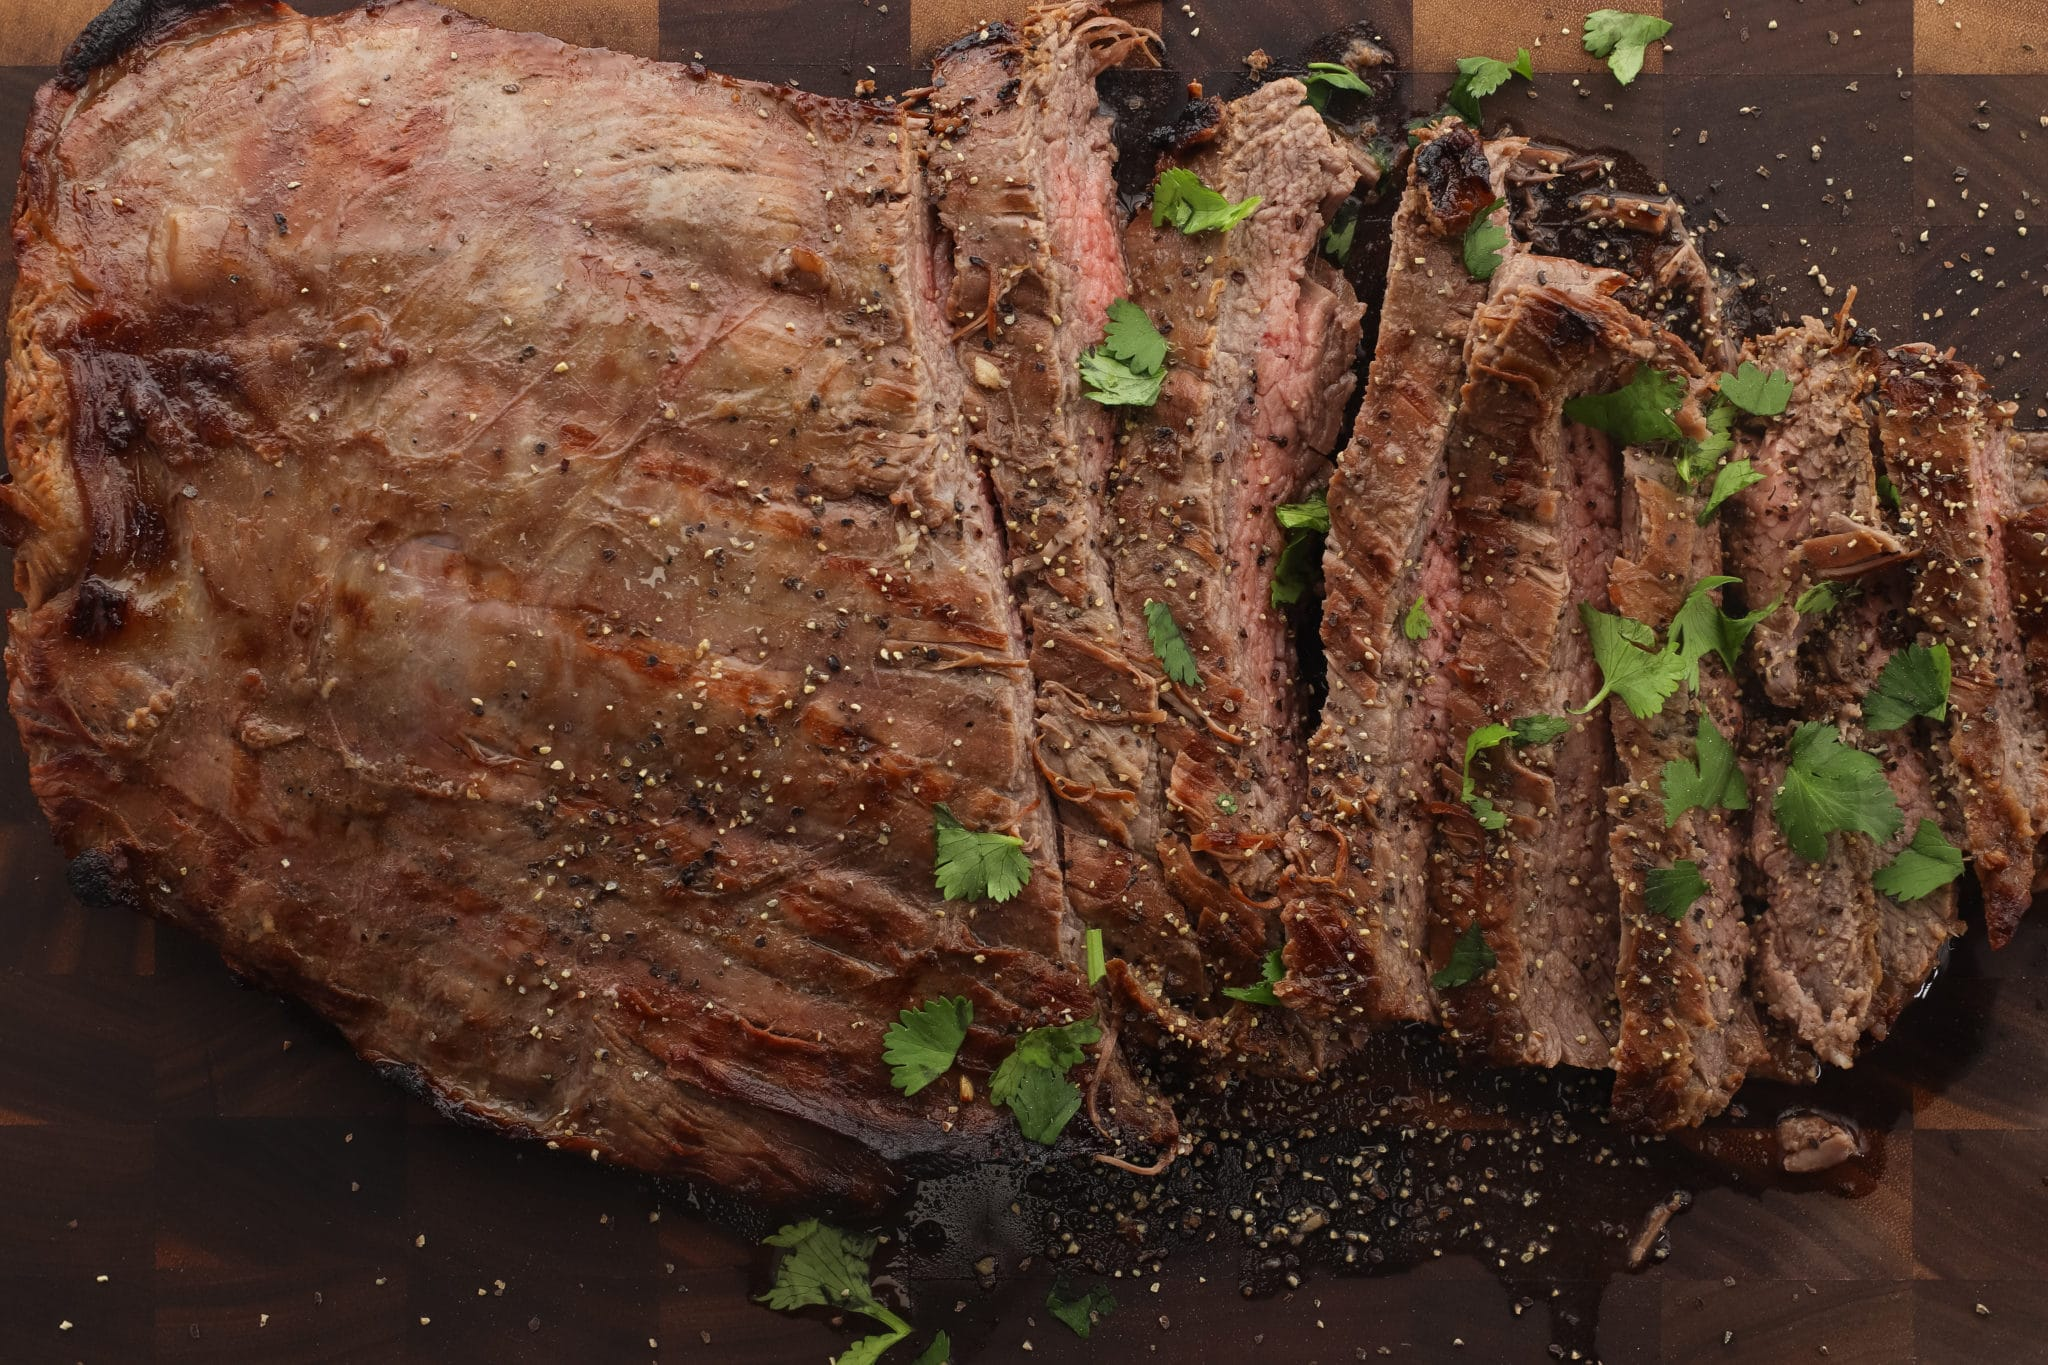 Flank steak on butcher block sliced and topped with fresh parsley.